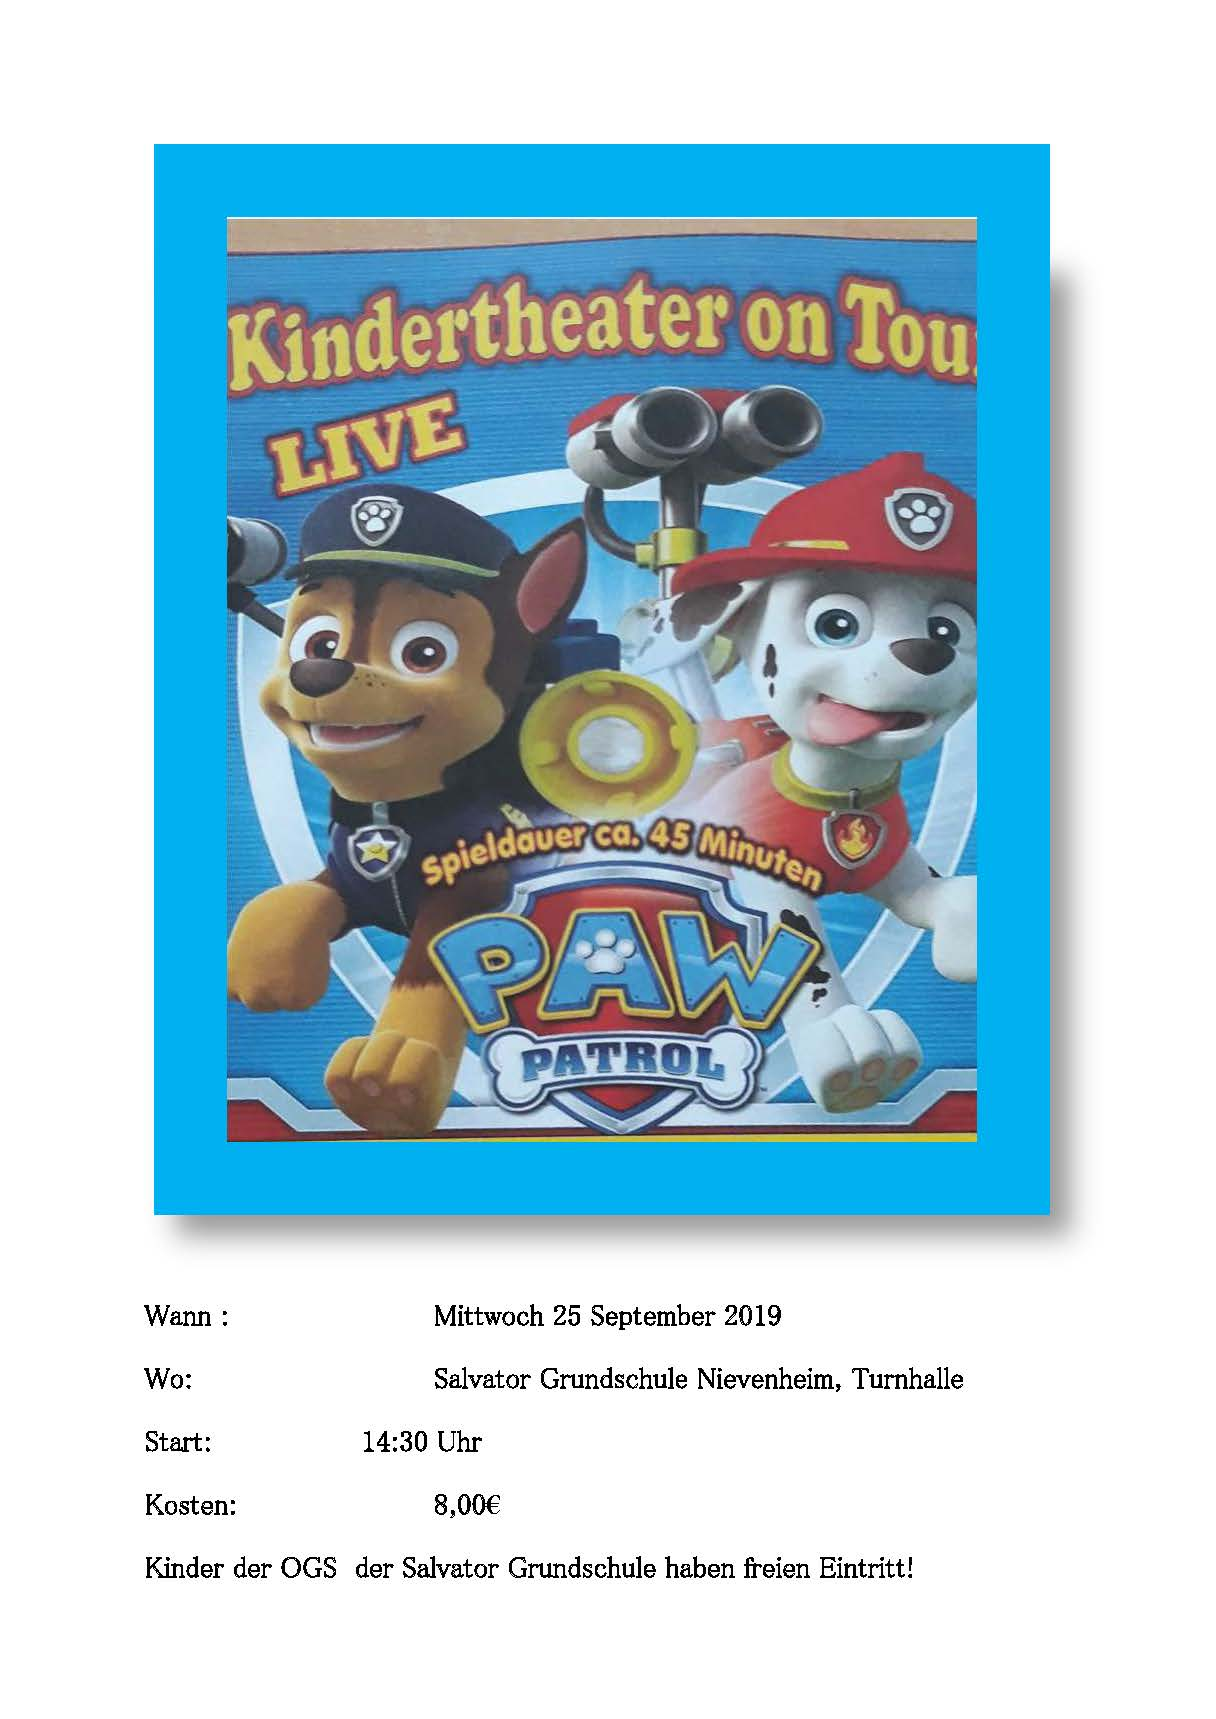 Kindertheater on Tour am 25.09.2019 an der Salvator-Schule